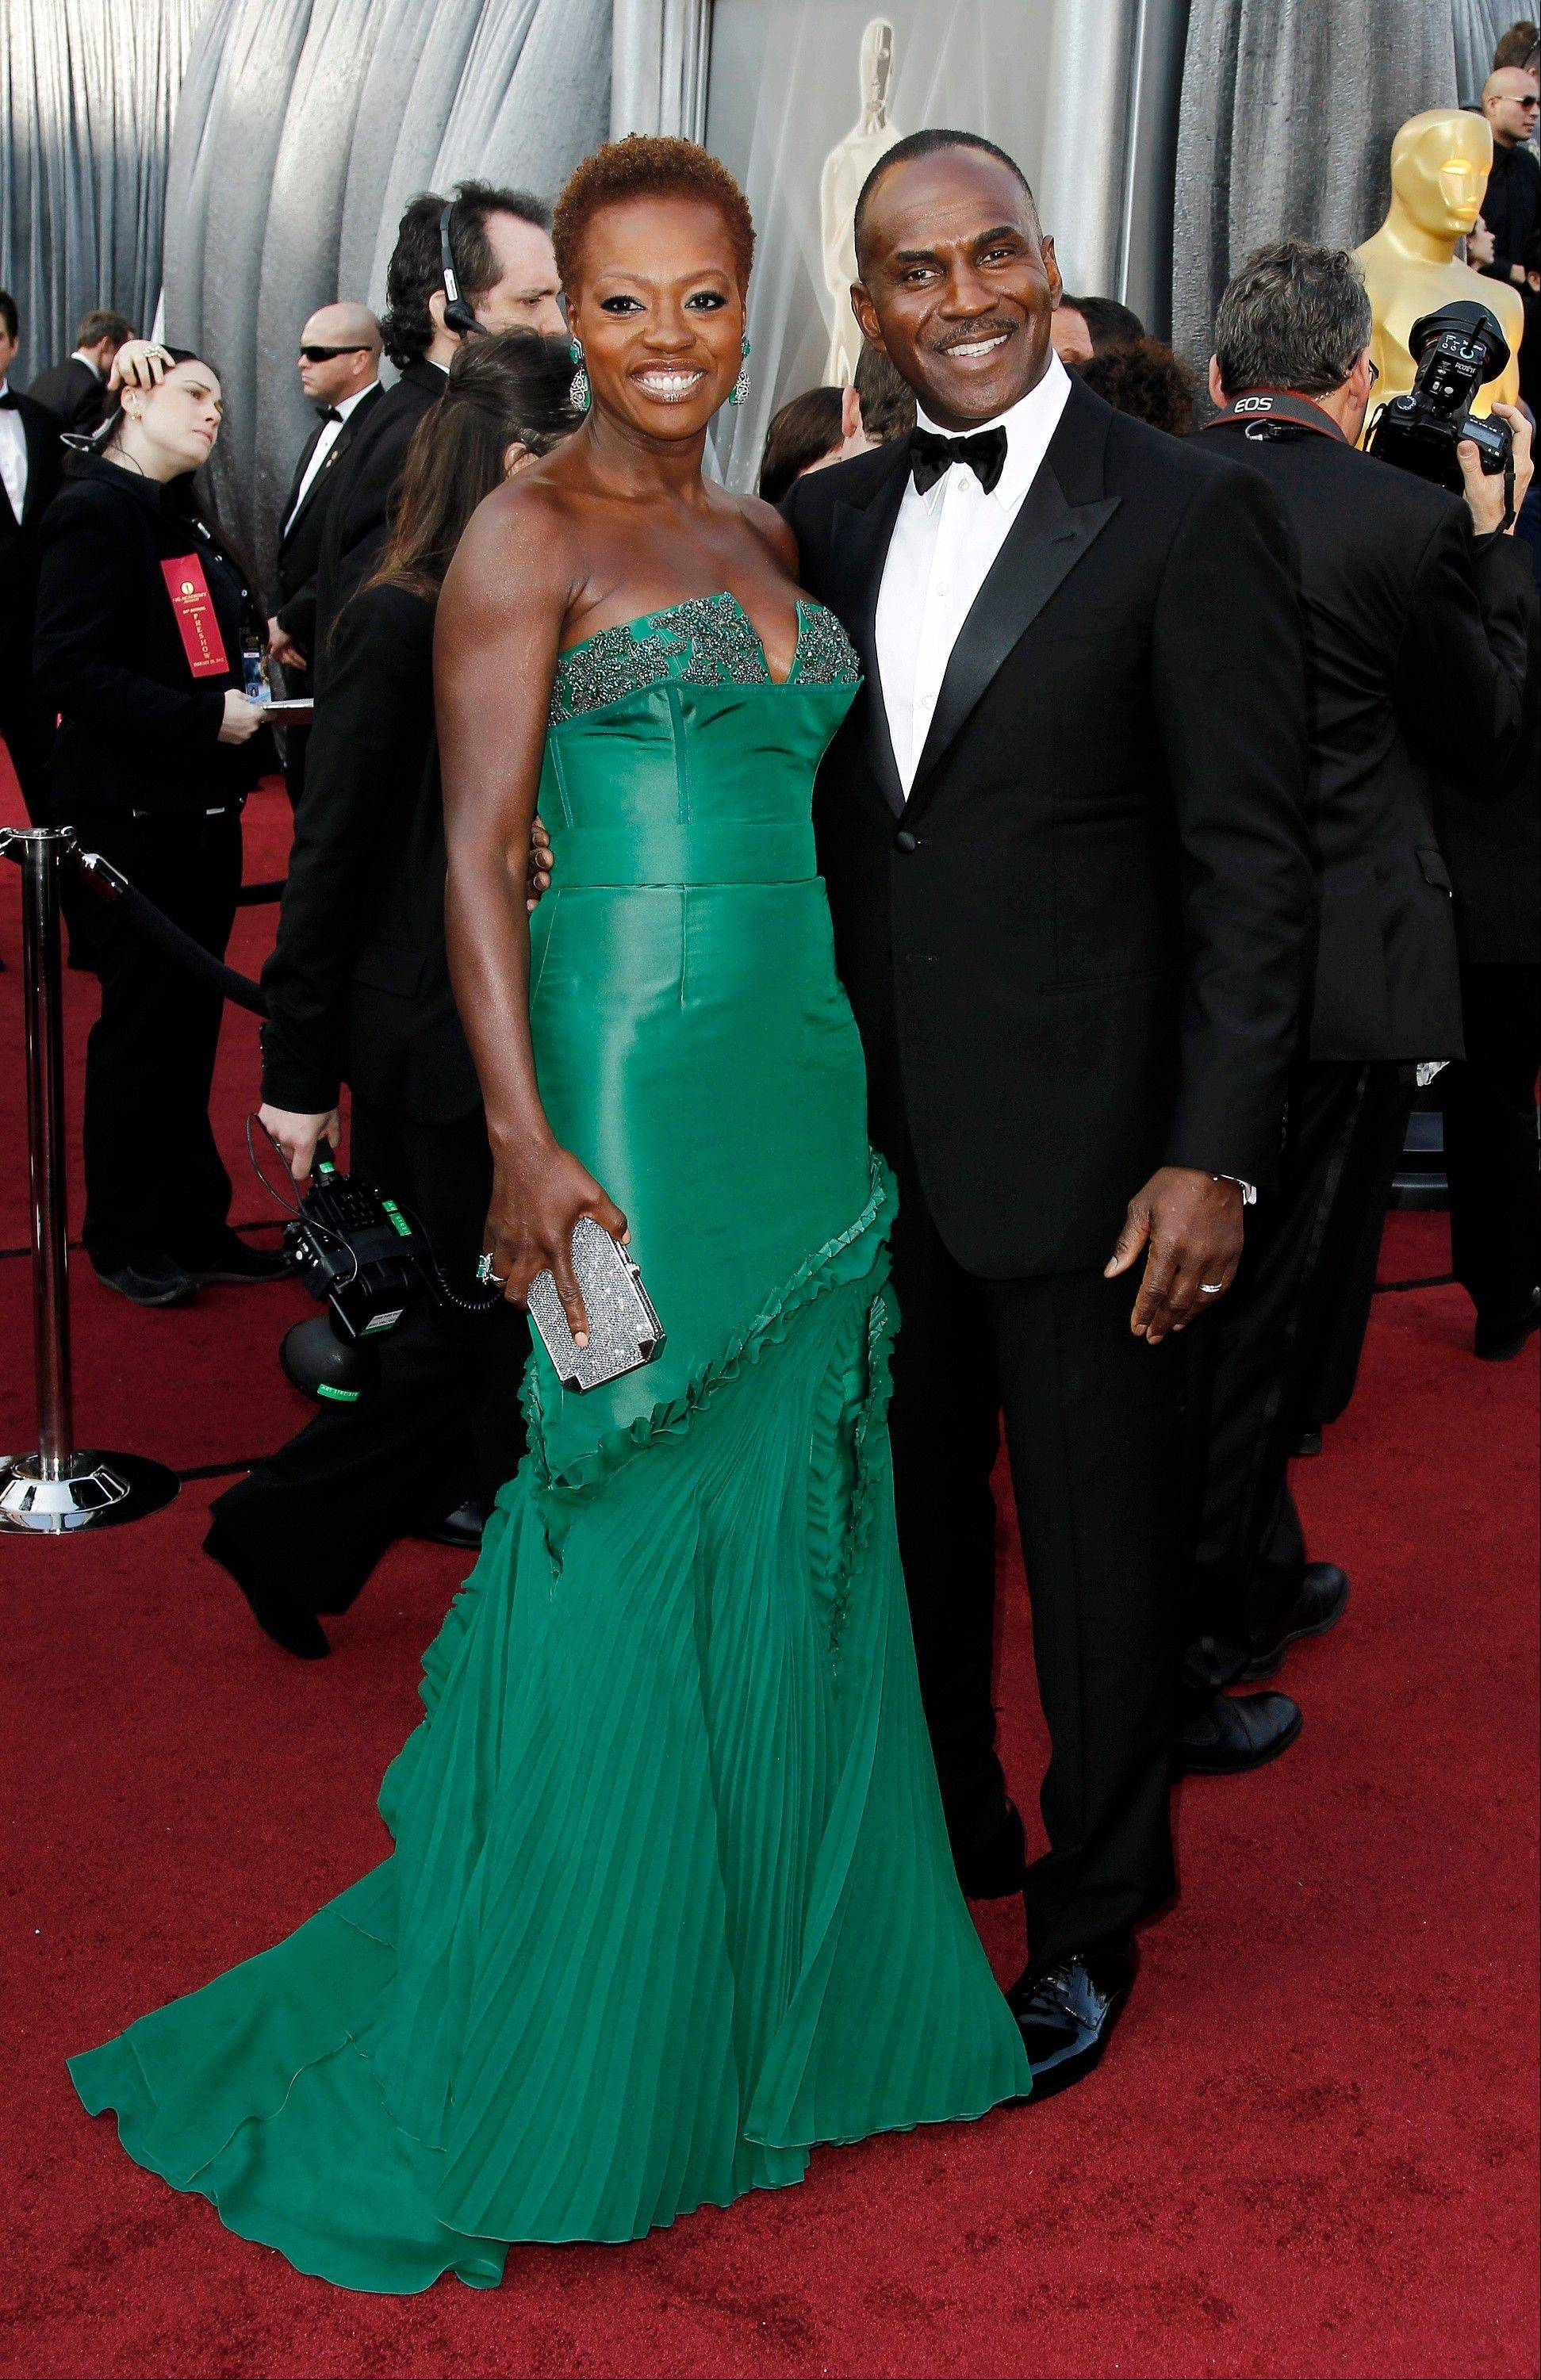 Nominee Viola Davis, wearing Vera Wang, and Julius Tennon arrive for the Oscars.